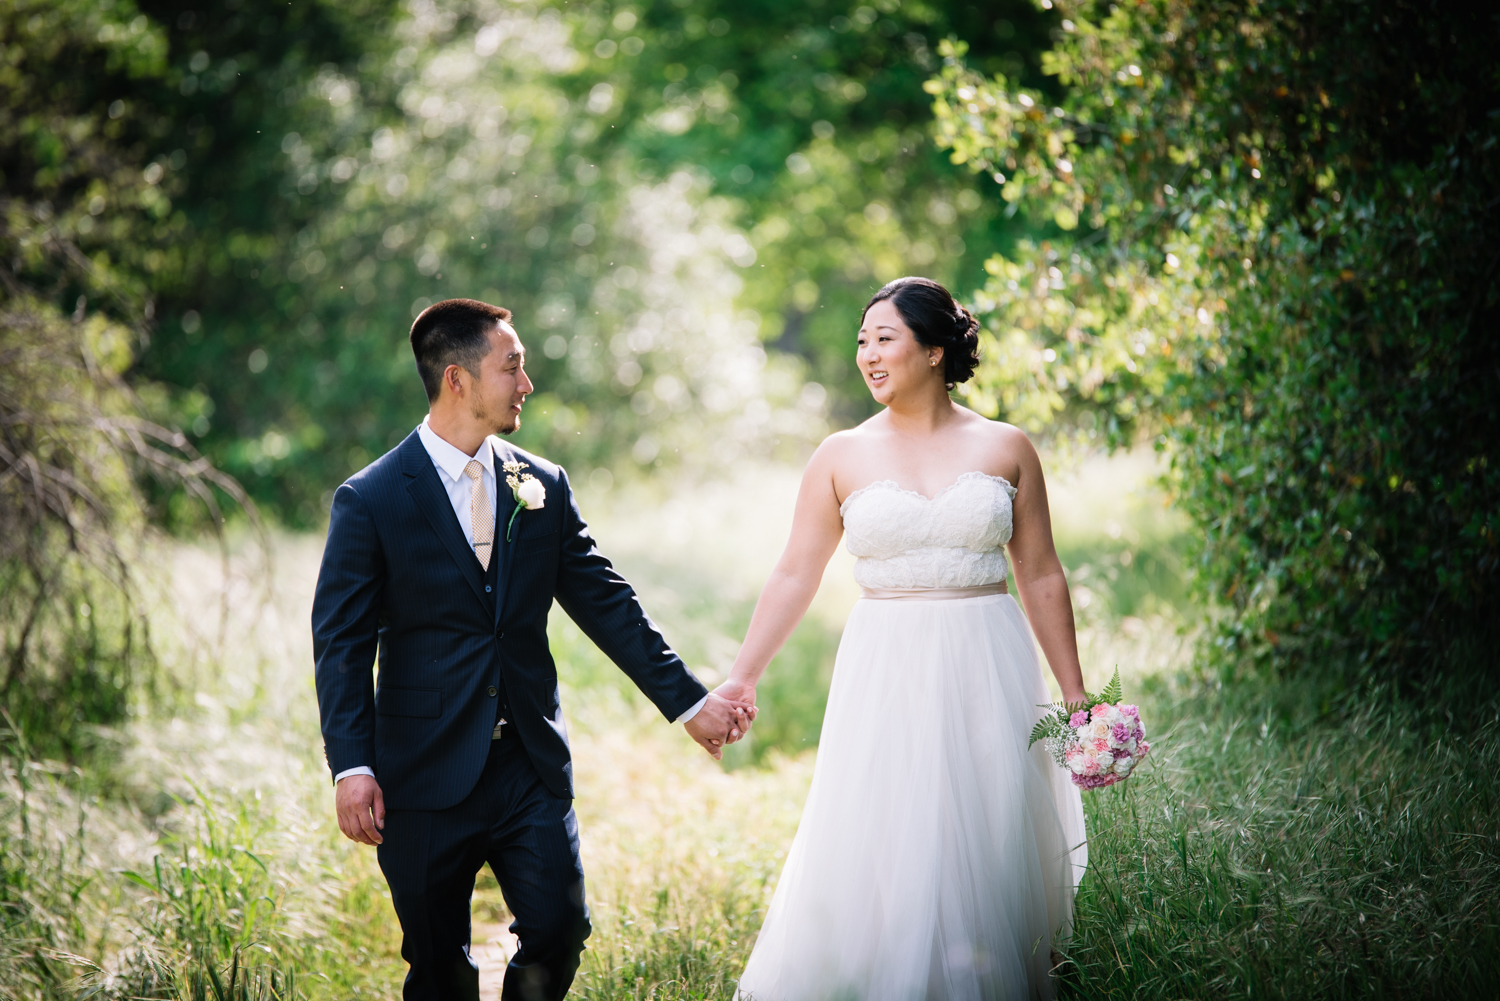 Henry Huynh, Wedding Photographer, Freelance, Portraits, Second Shooter, Sacramento, NorCal,_